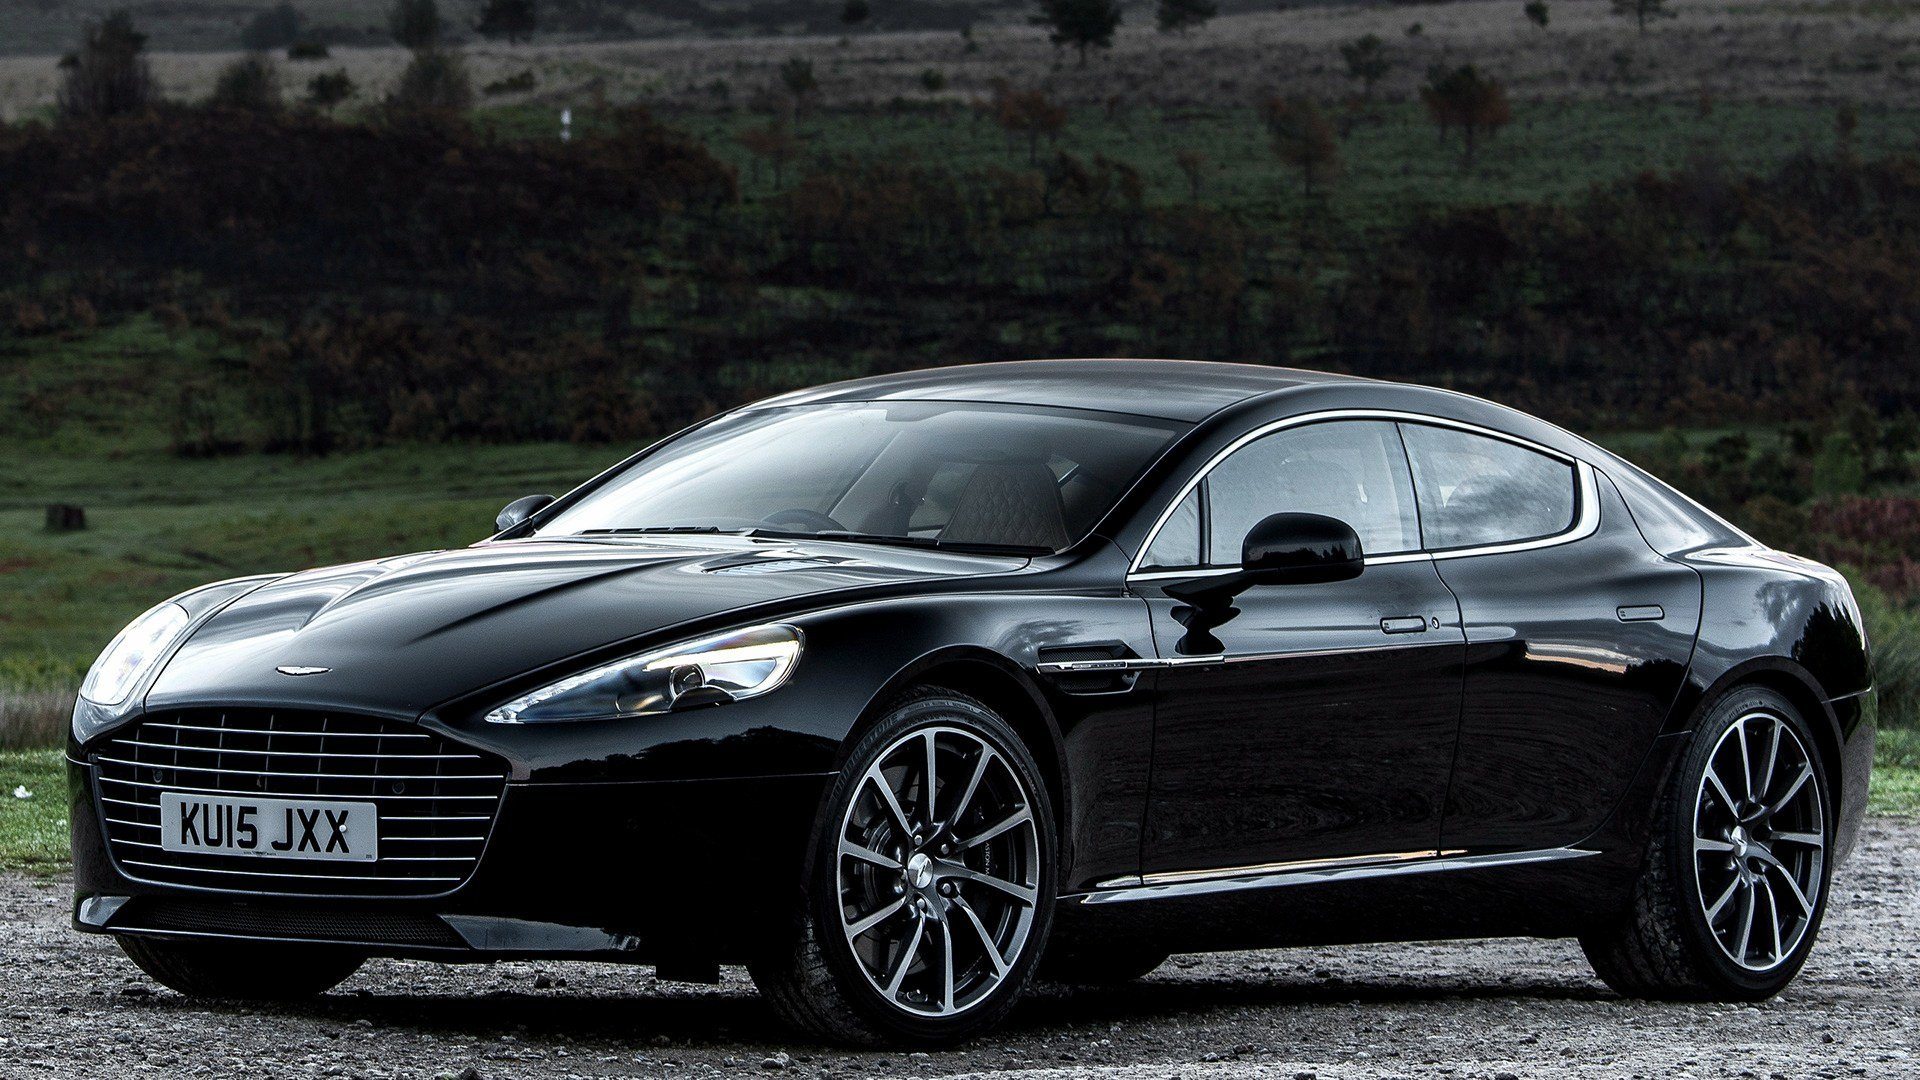 Latest 2013 Aston Martin Rapide S Uk Wallpapers And Hd Images Free Download